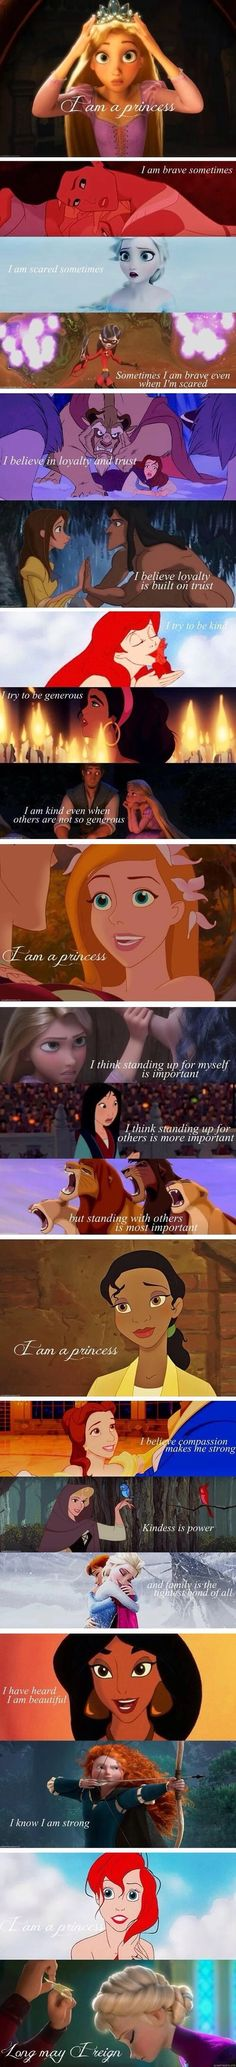 So true every girl is a princess